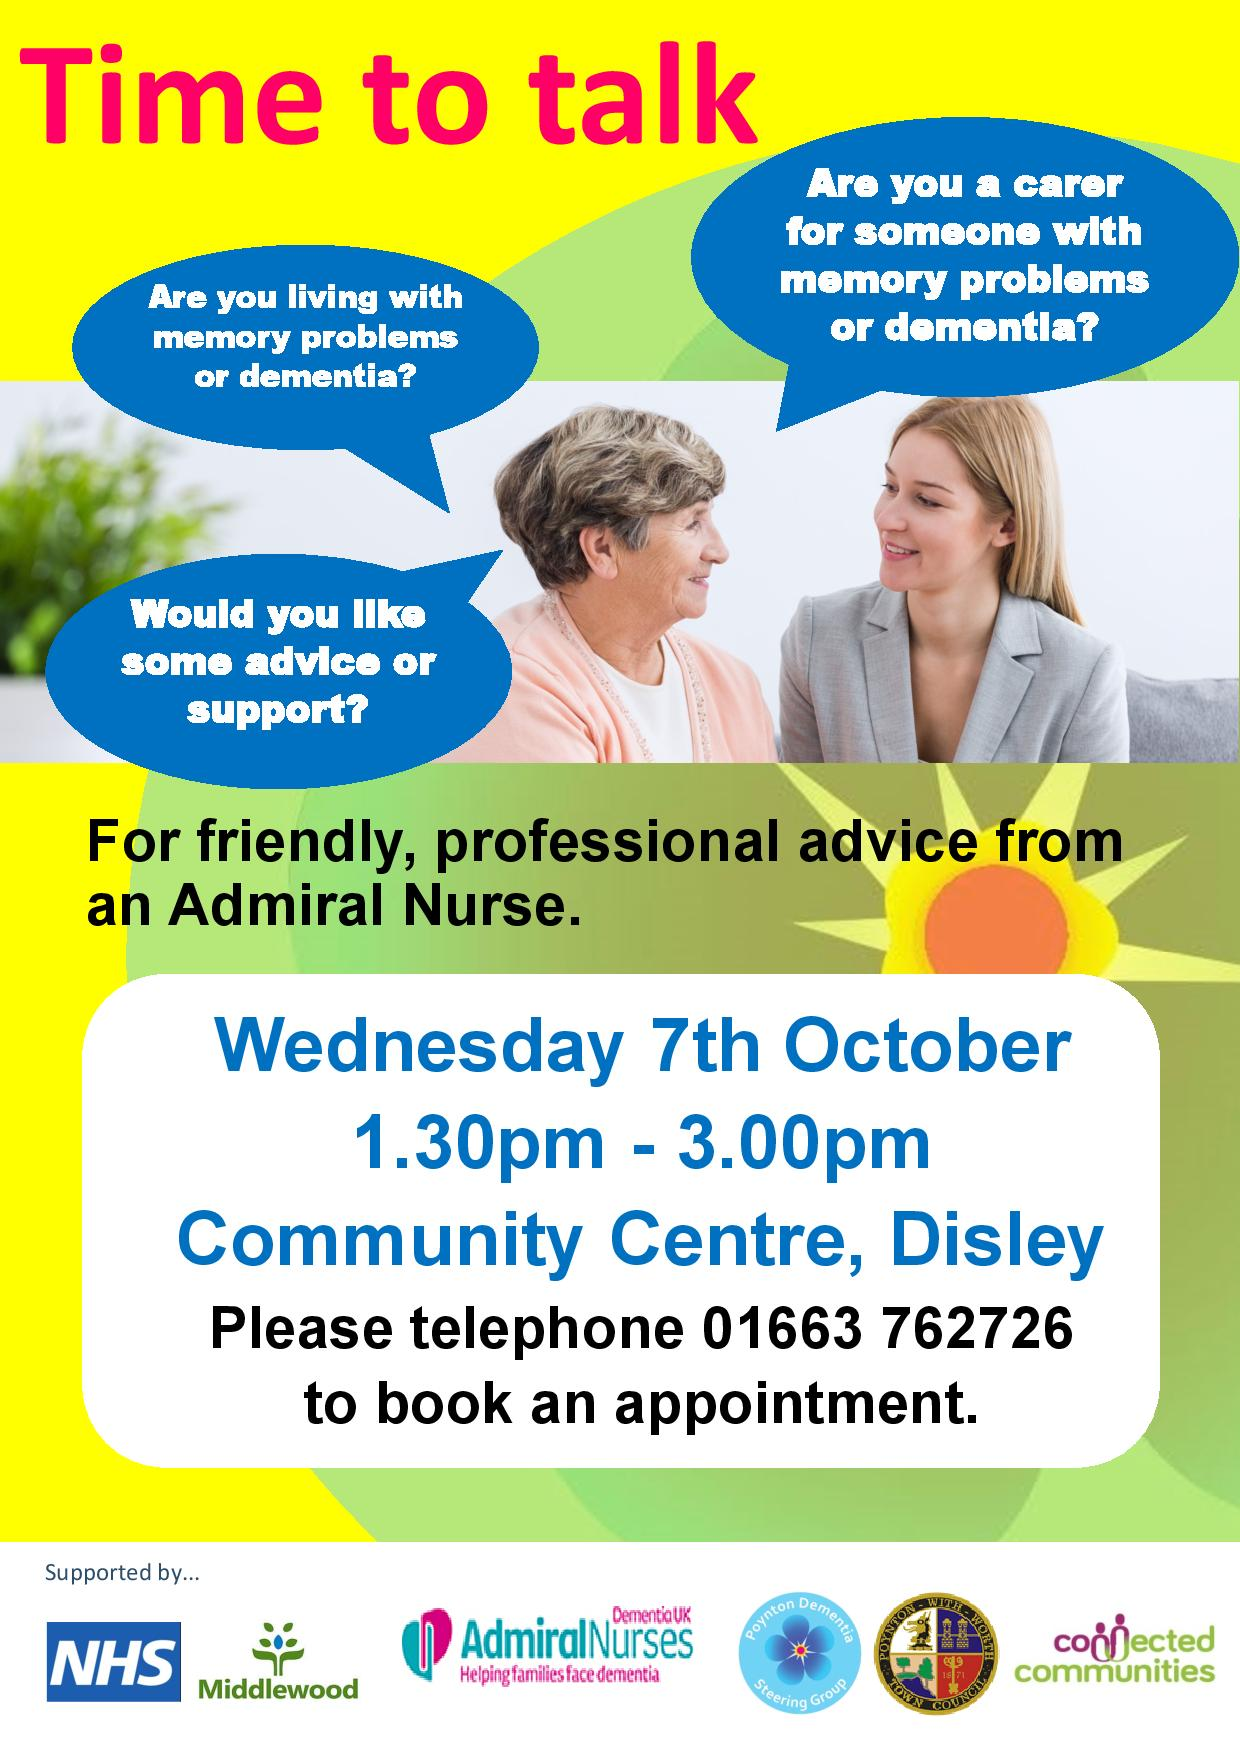 Time to Talk Dementia session Disley Community Centre